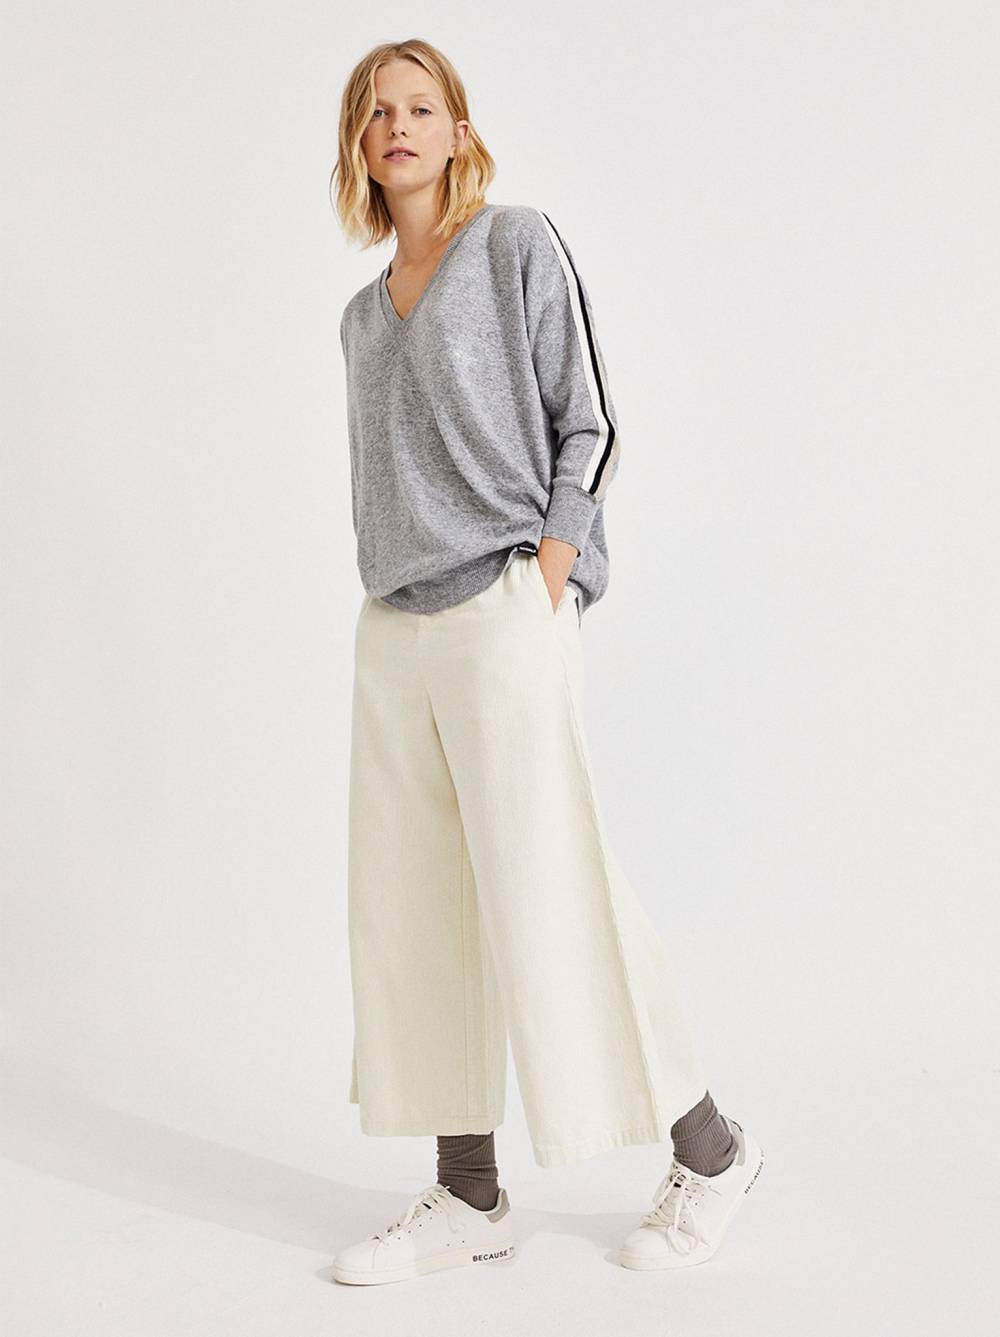 ecoalf recycled ethical conscious fashion